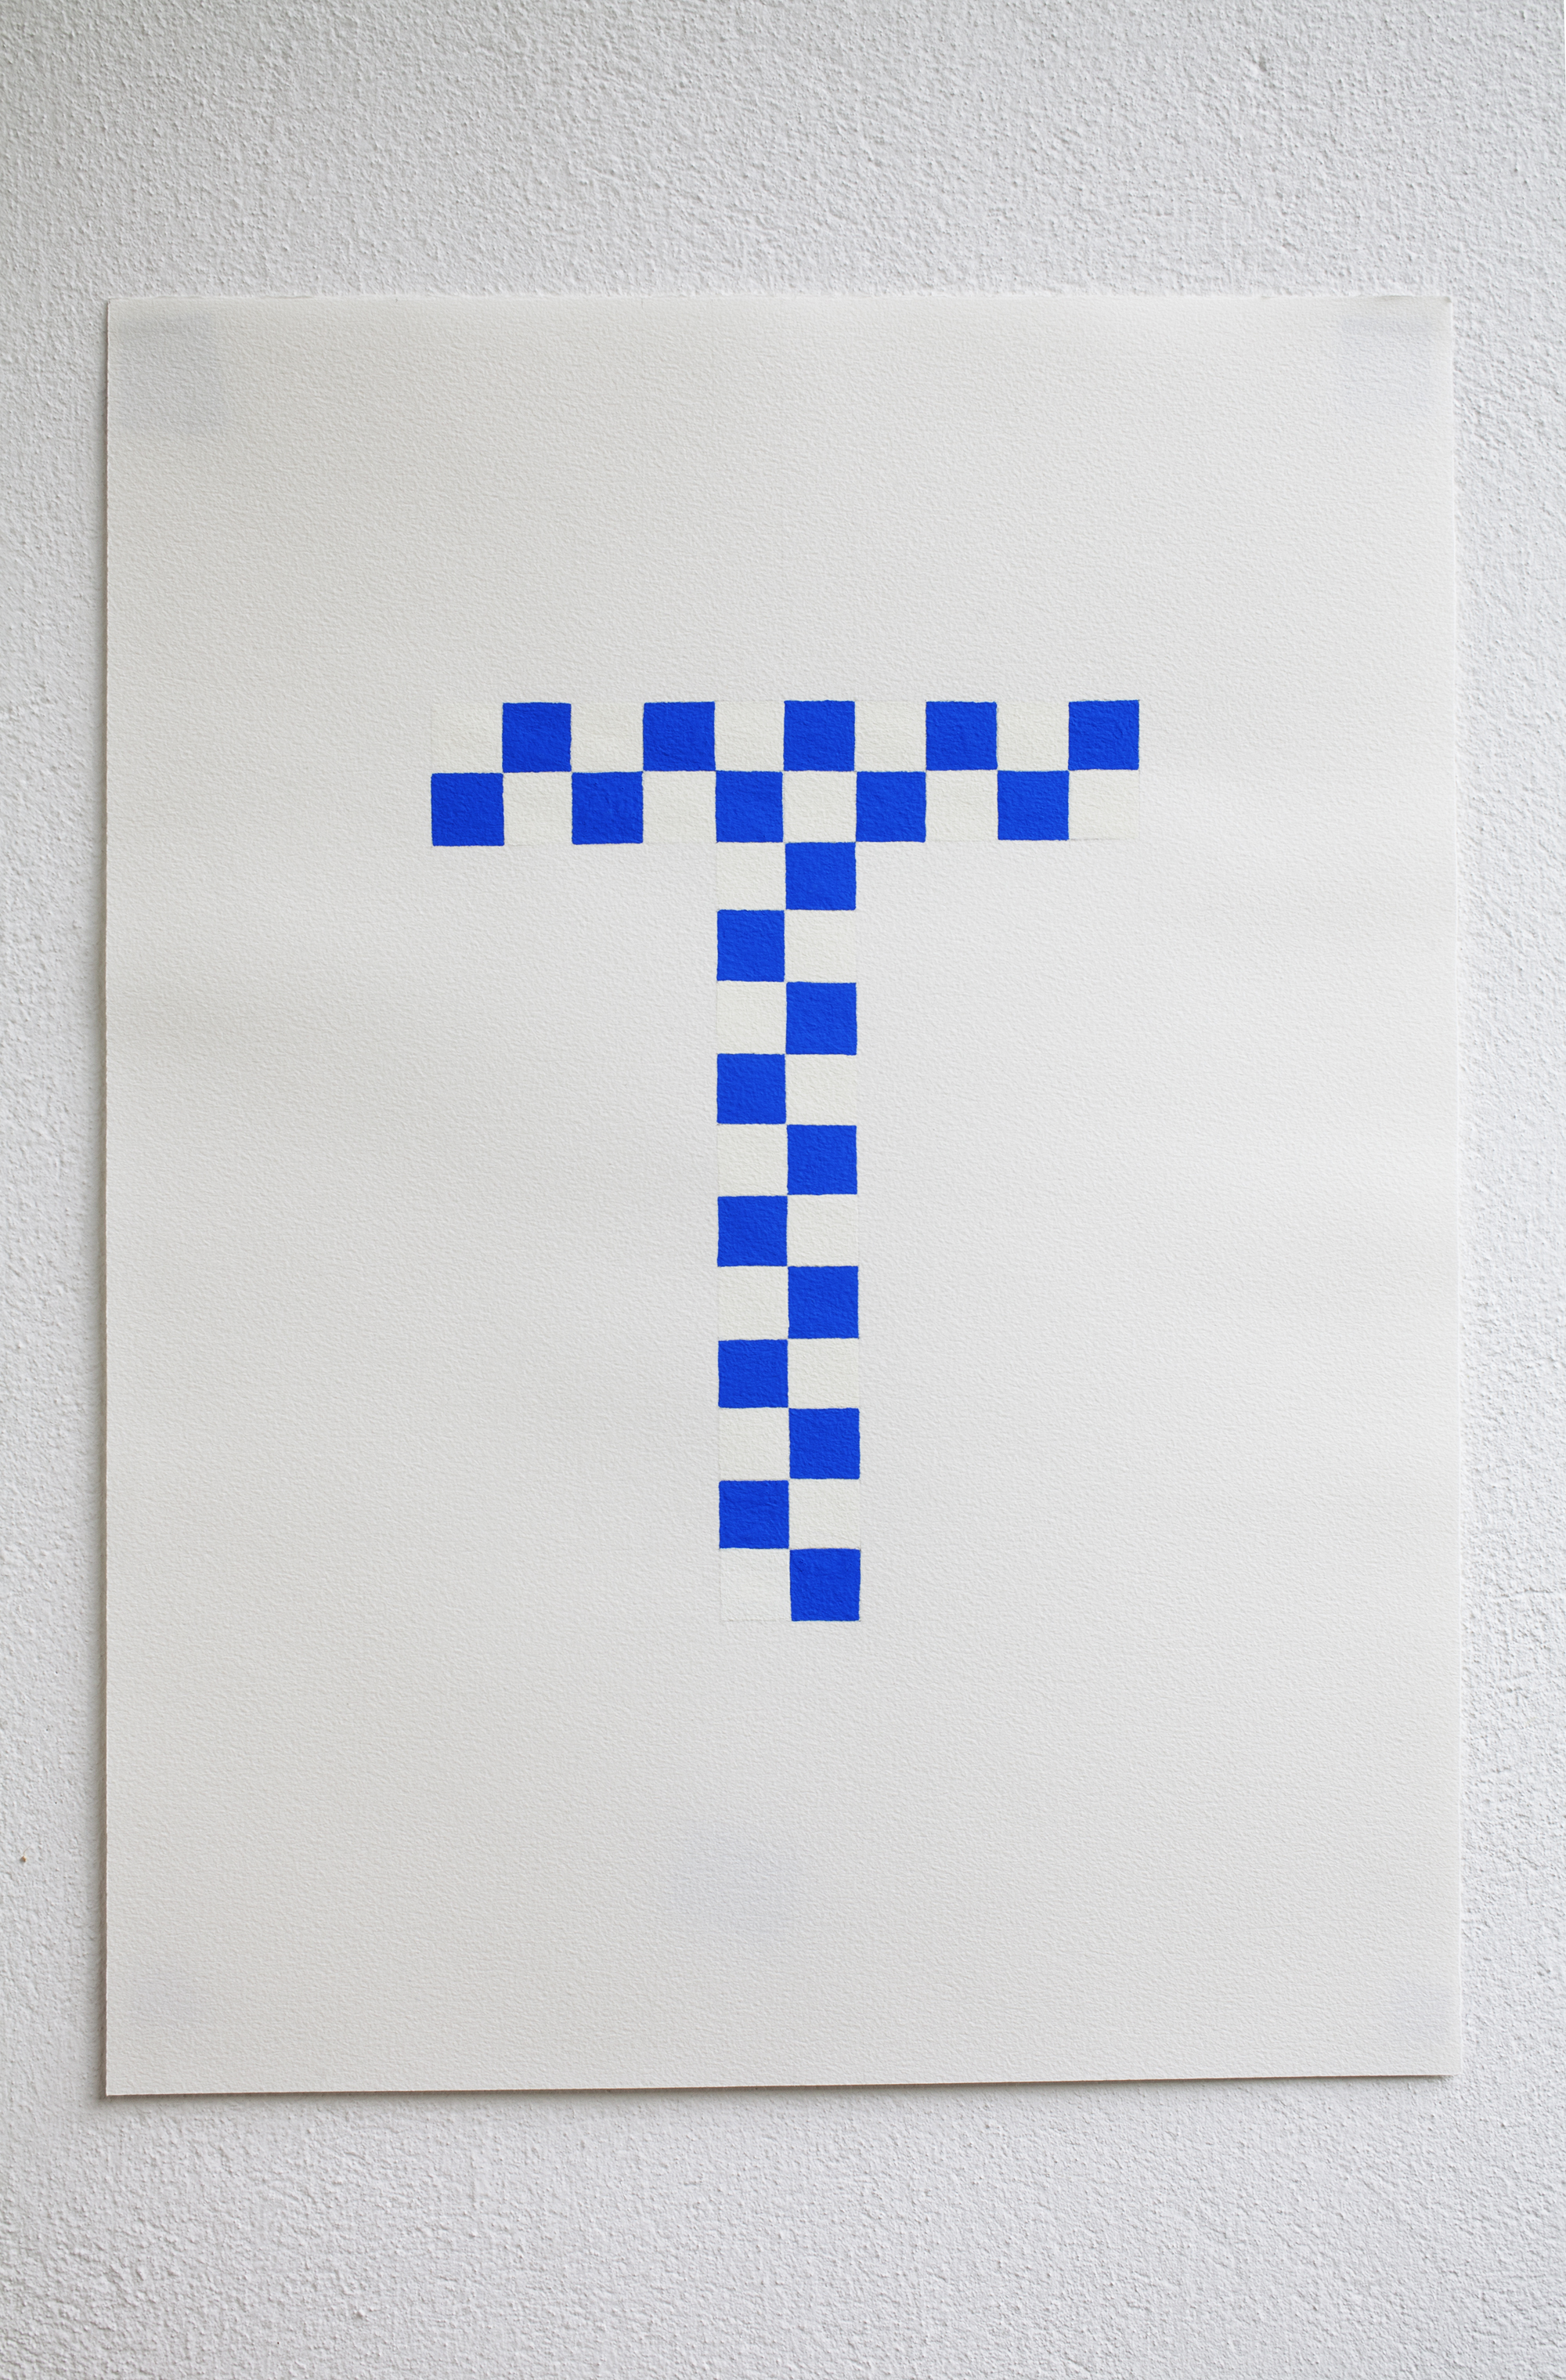 Untitled, 2011, gouache on paper, 31 x 43cm